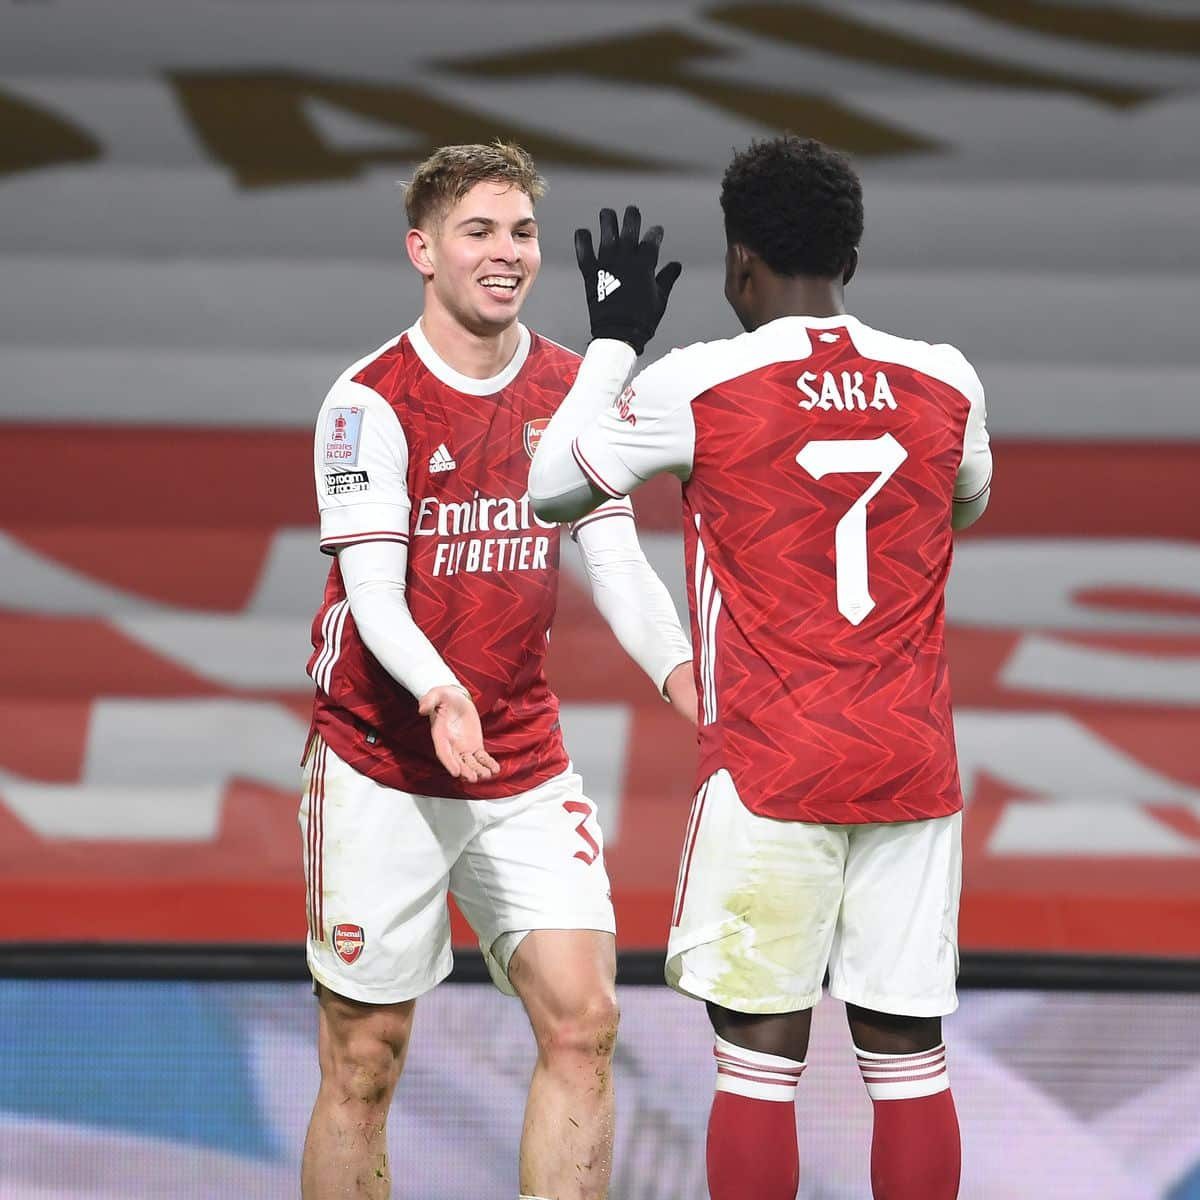 09/05/2021 Daily Predictions: English Premier League – Arsenal vs West Brom